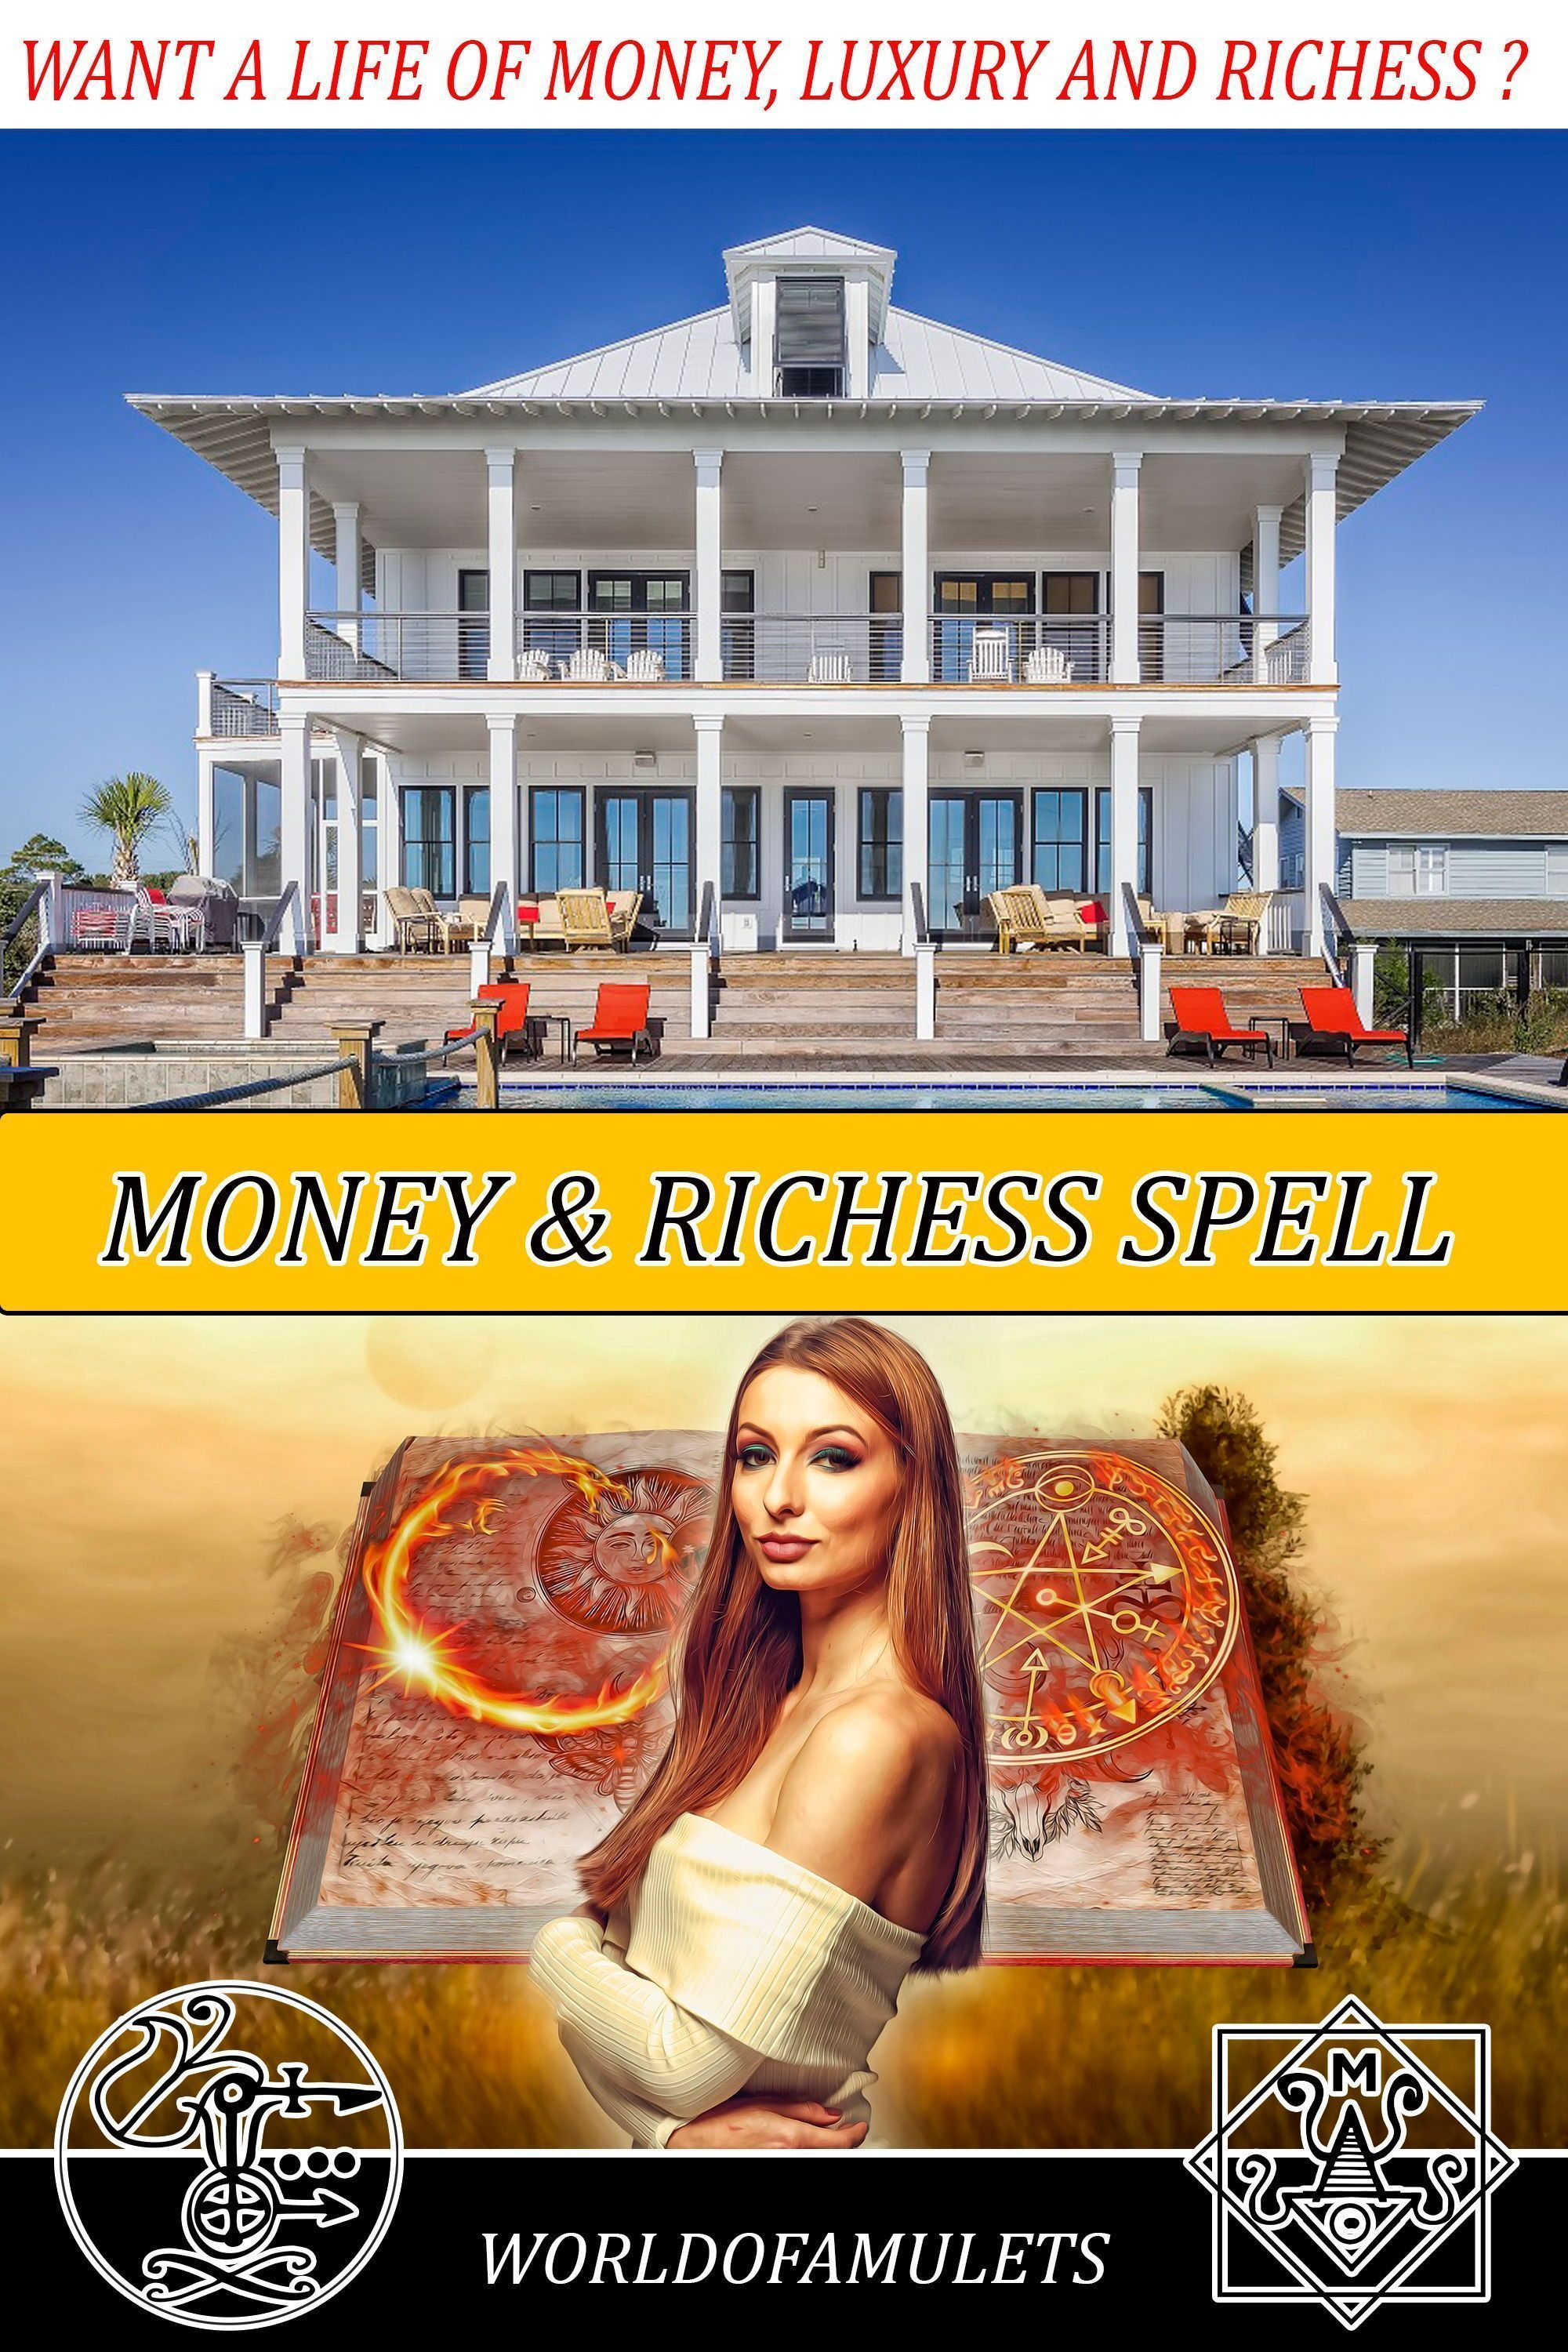 Witchcraft Wealth and Money Spell with Baal School of witchcraft and Wizardry School Beginner Witchcraft Spells #moneyspell Want a life of richess, money, wealth, expensive jewelry, luxury cars and homes and dream vacations?  Our Money Spell can make this true. Check the reviews  #money #spell #wealth #richess #moneyspell Witchcraft Wealth and Money Spell with Baal School of witchcraft and Wizardry School Beginner Witchcraft Spells #moneyspell Want a life of richess, money, wealth, expensive jew #moneyspell